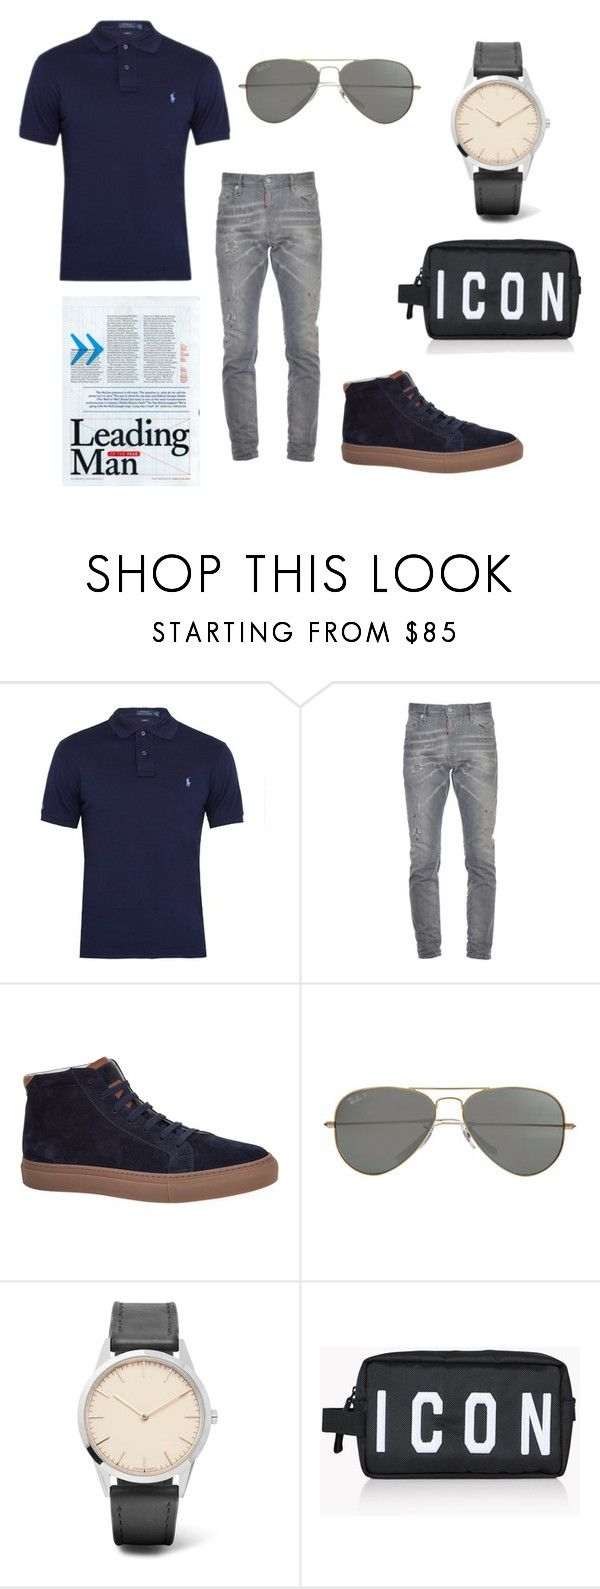 """Untitled #122"" by hasicelma ❤ liked on Polyvore featuring Polo Ralph Lauren, Dsquared2, Brunello Cucinelli, Parasol, Uniform Wares, men's fashion, menswear, rayban, PoloShirt and autumnday"